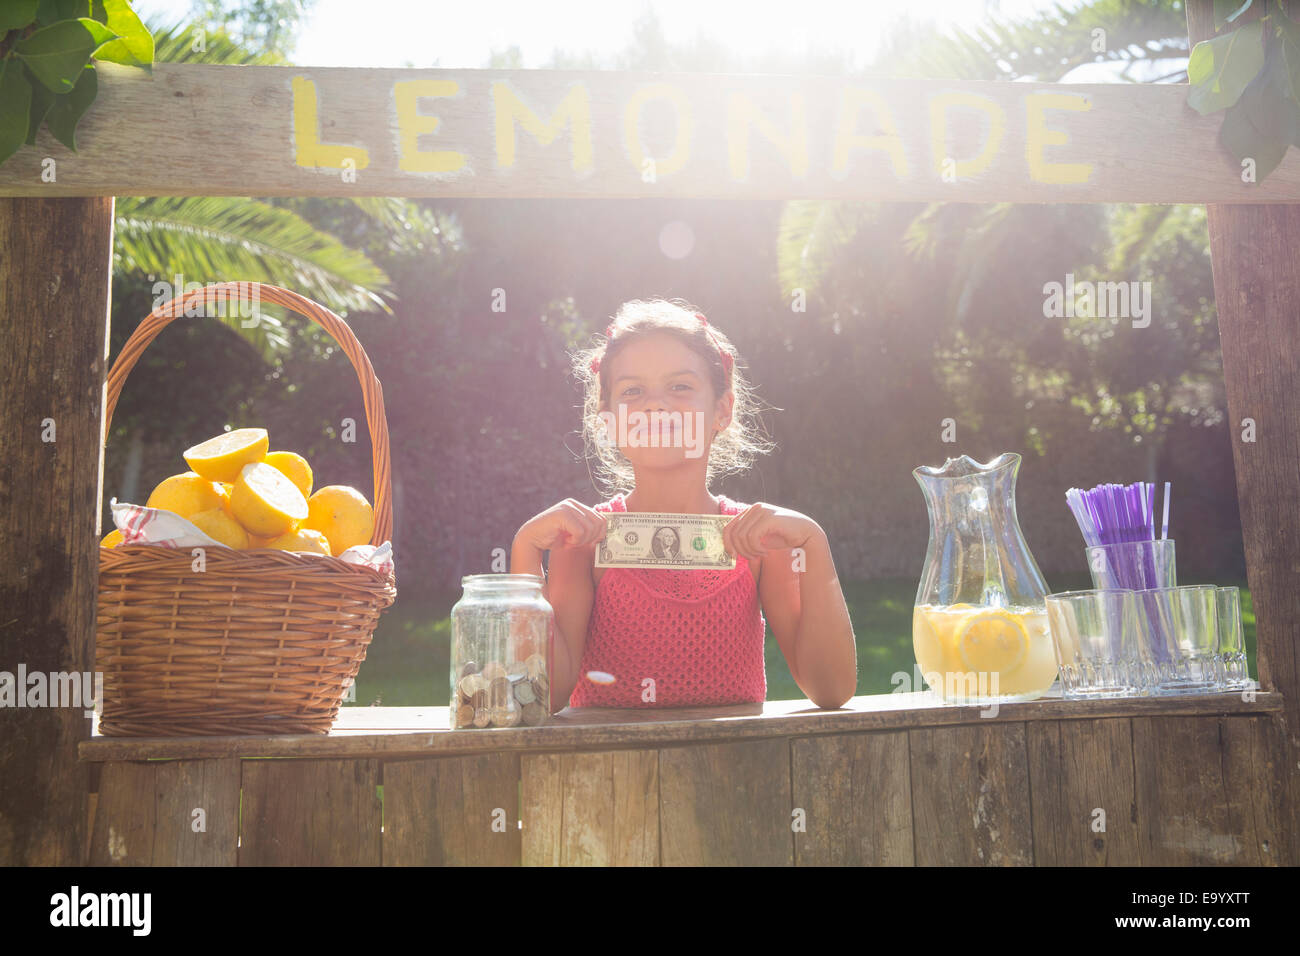 Portrait of proud girl on lemonade stand holding up one dollar bill - Stock Image